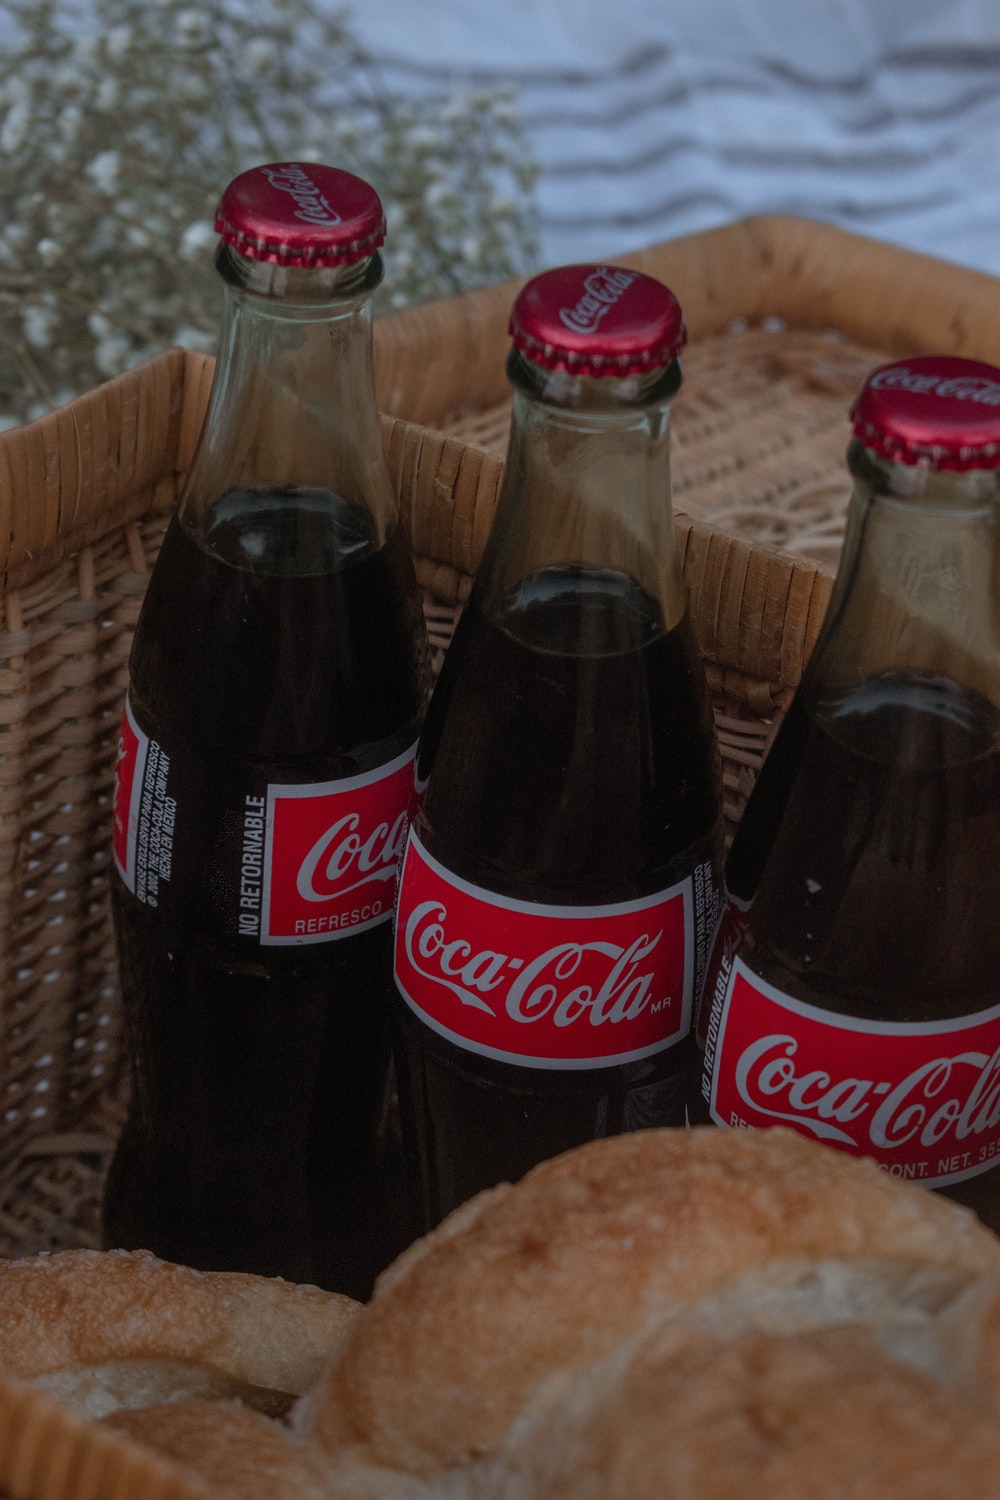 2 coca cola bottles on brown woven table